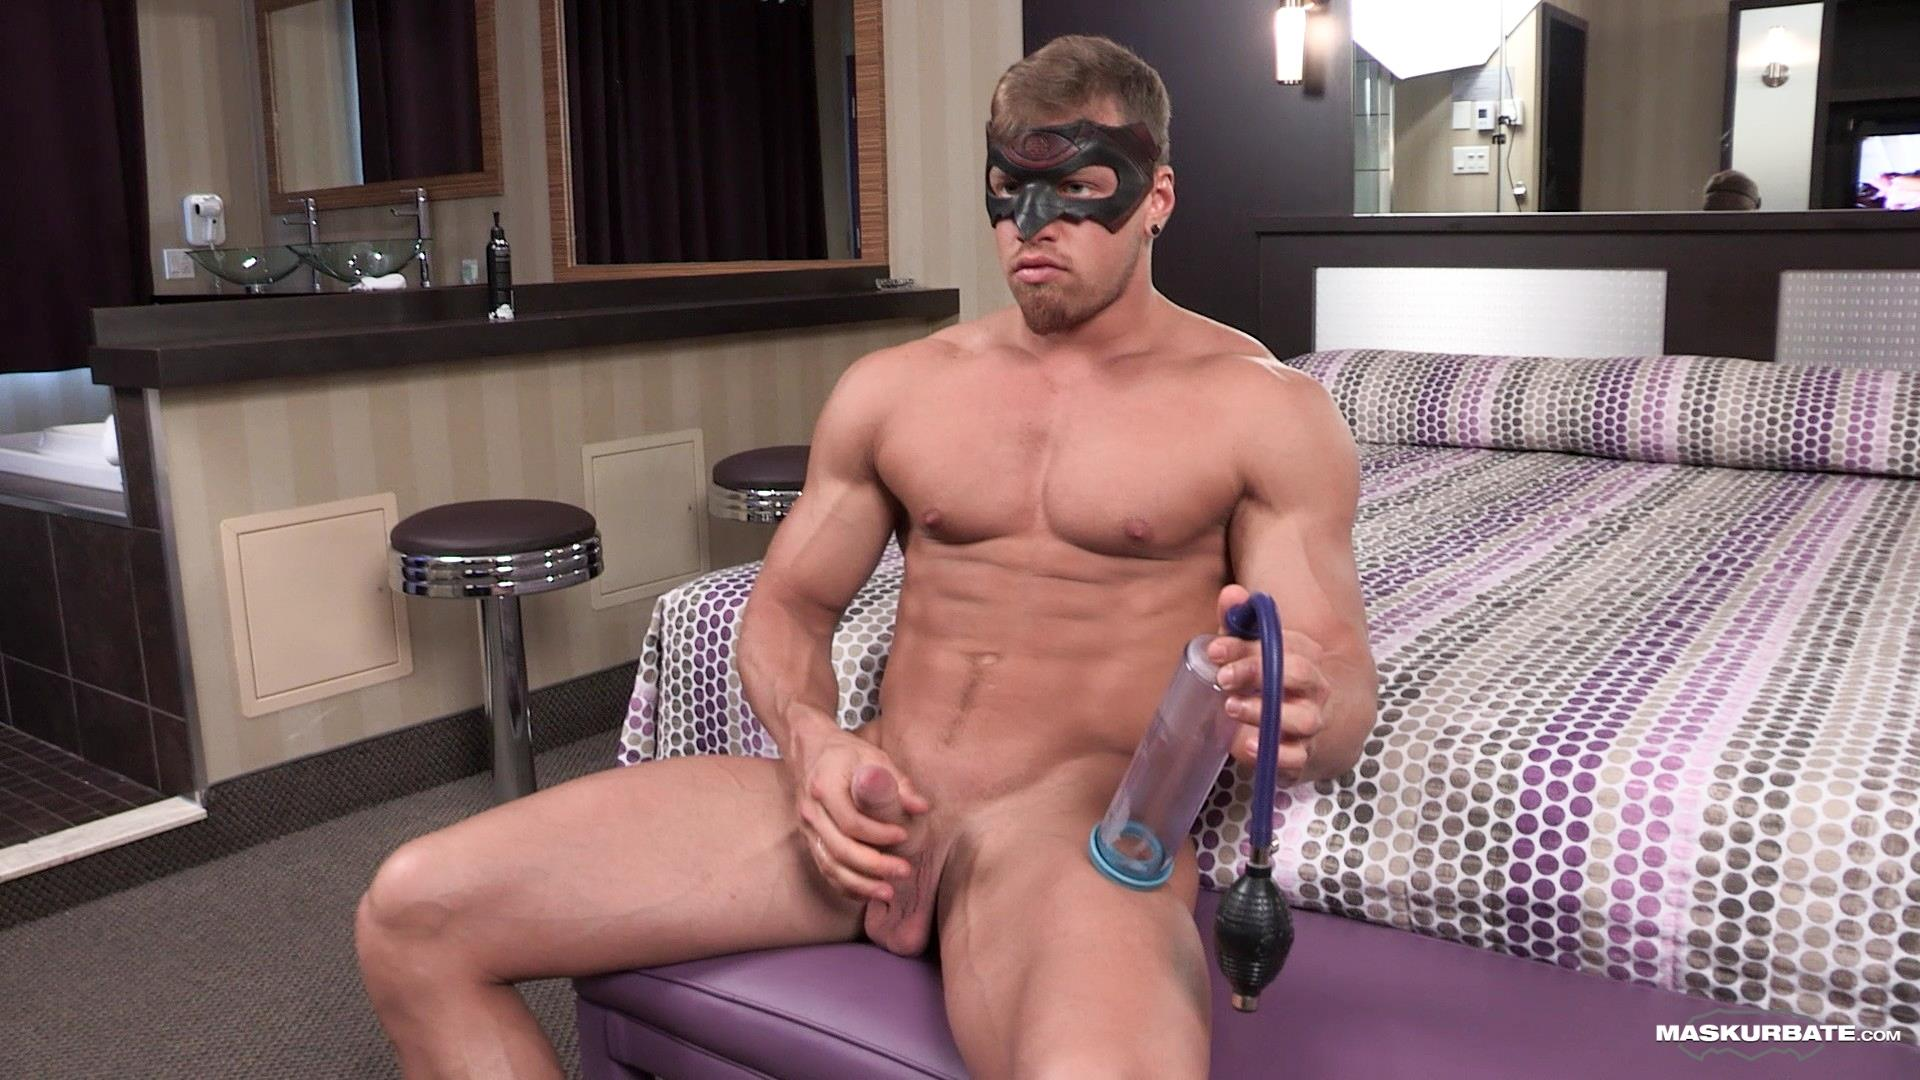 Maskurbate-Brad-and-Pascal-Muscle-Hunk-Jerking-Off-In-A-Condom-04 Straight Masked Muscle Hunk Gets Paid To Jerk Off In A Condom